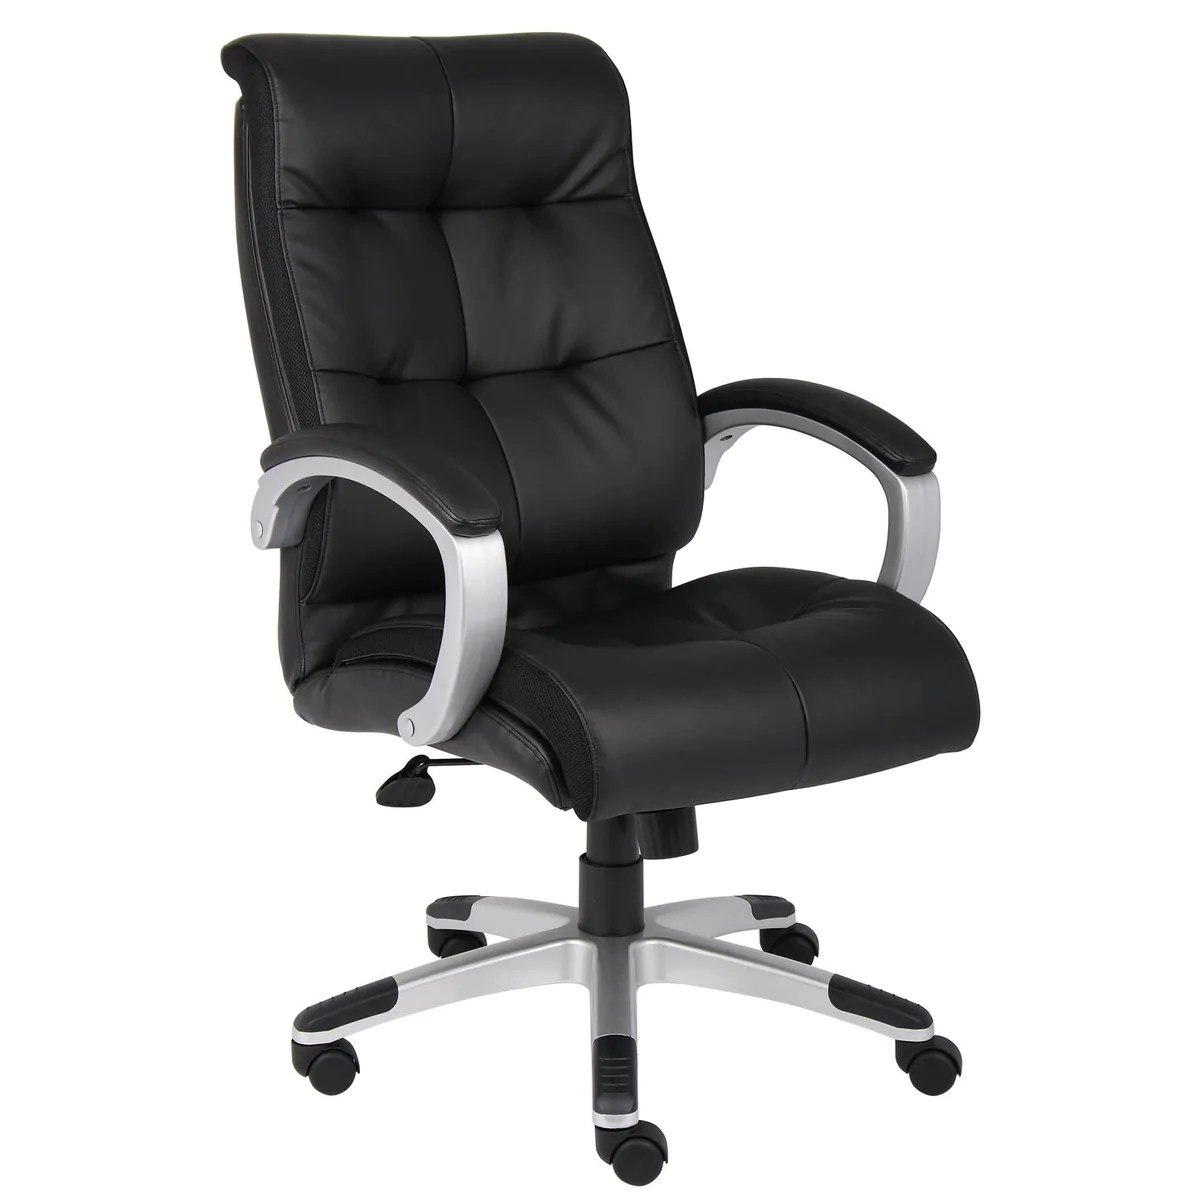 Plush Chairs Boss Chairs Boss B8771s Bk Double Plush High Back Executive Chair